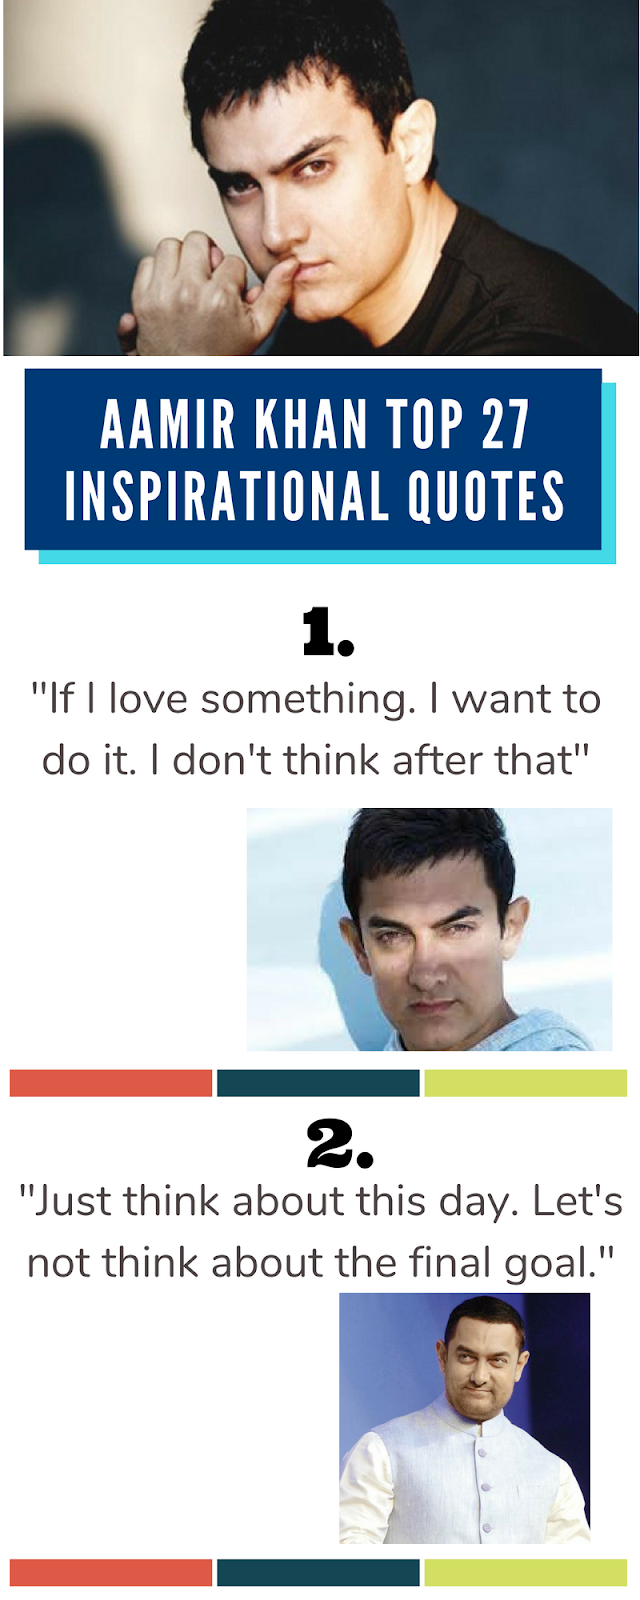 Top 27 Inspirational Quotes of Aamir Khan (Infographic)